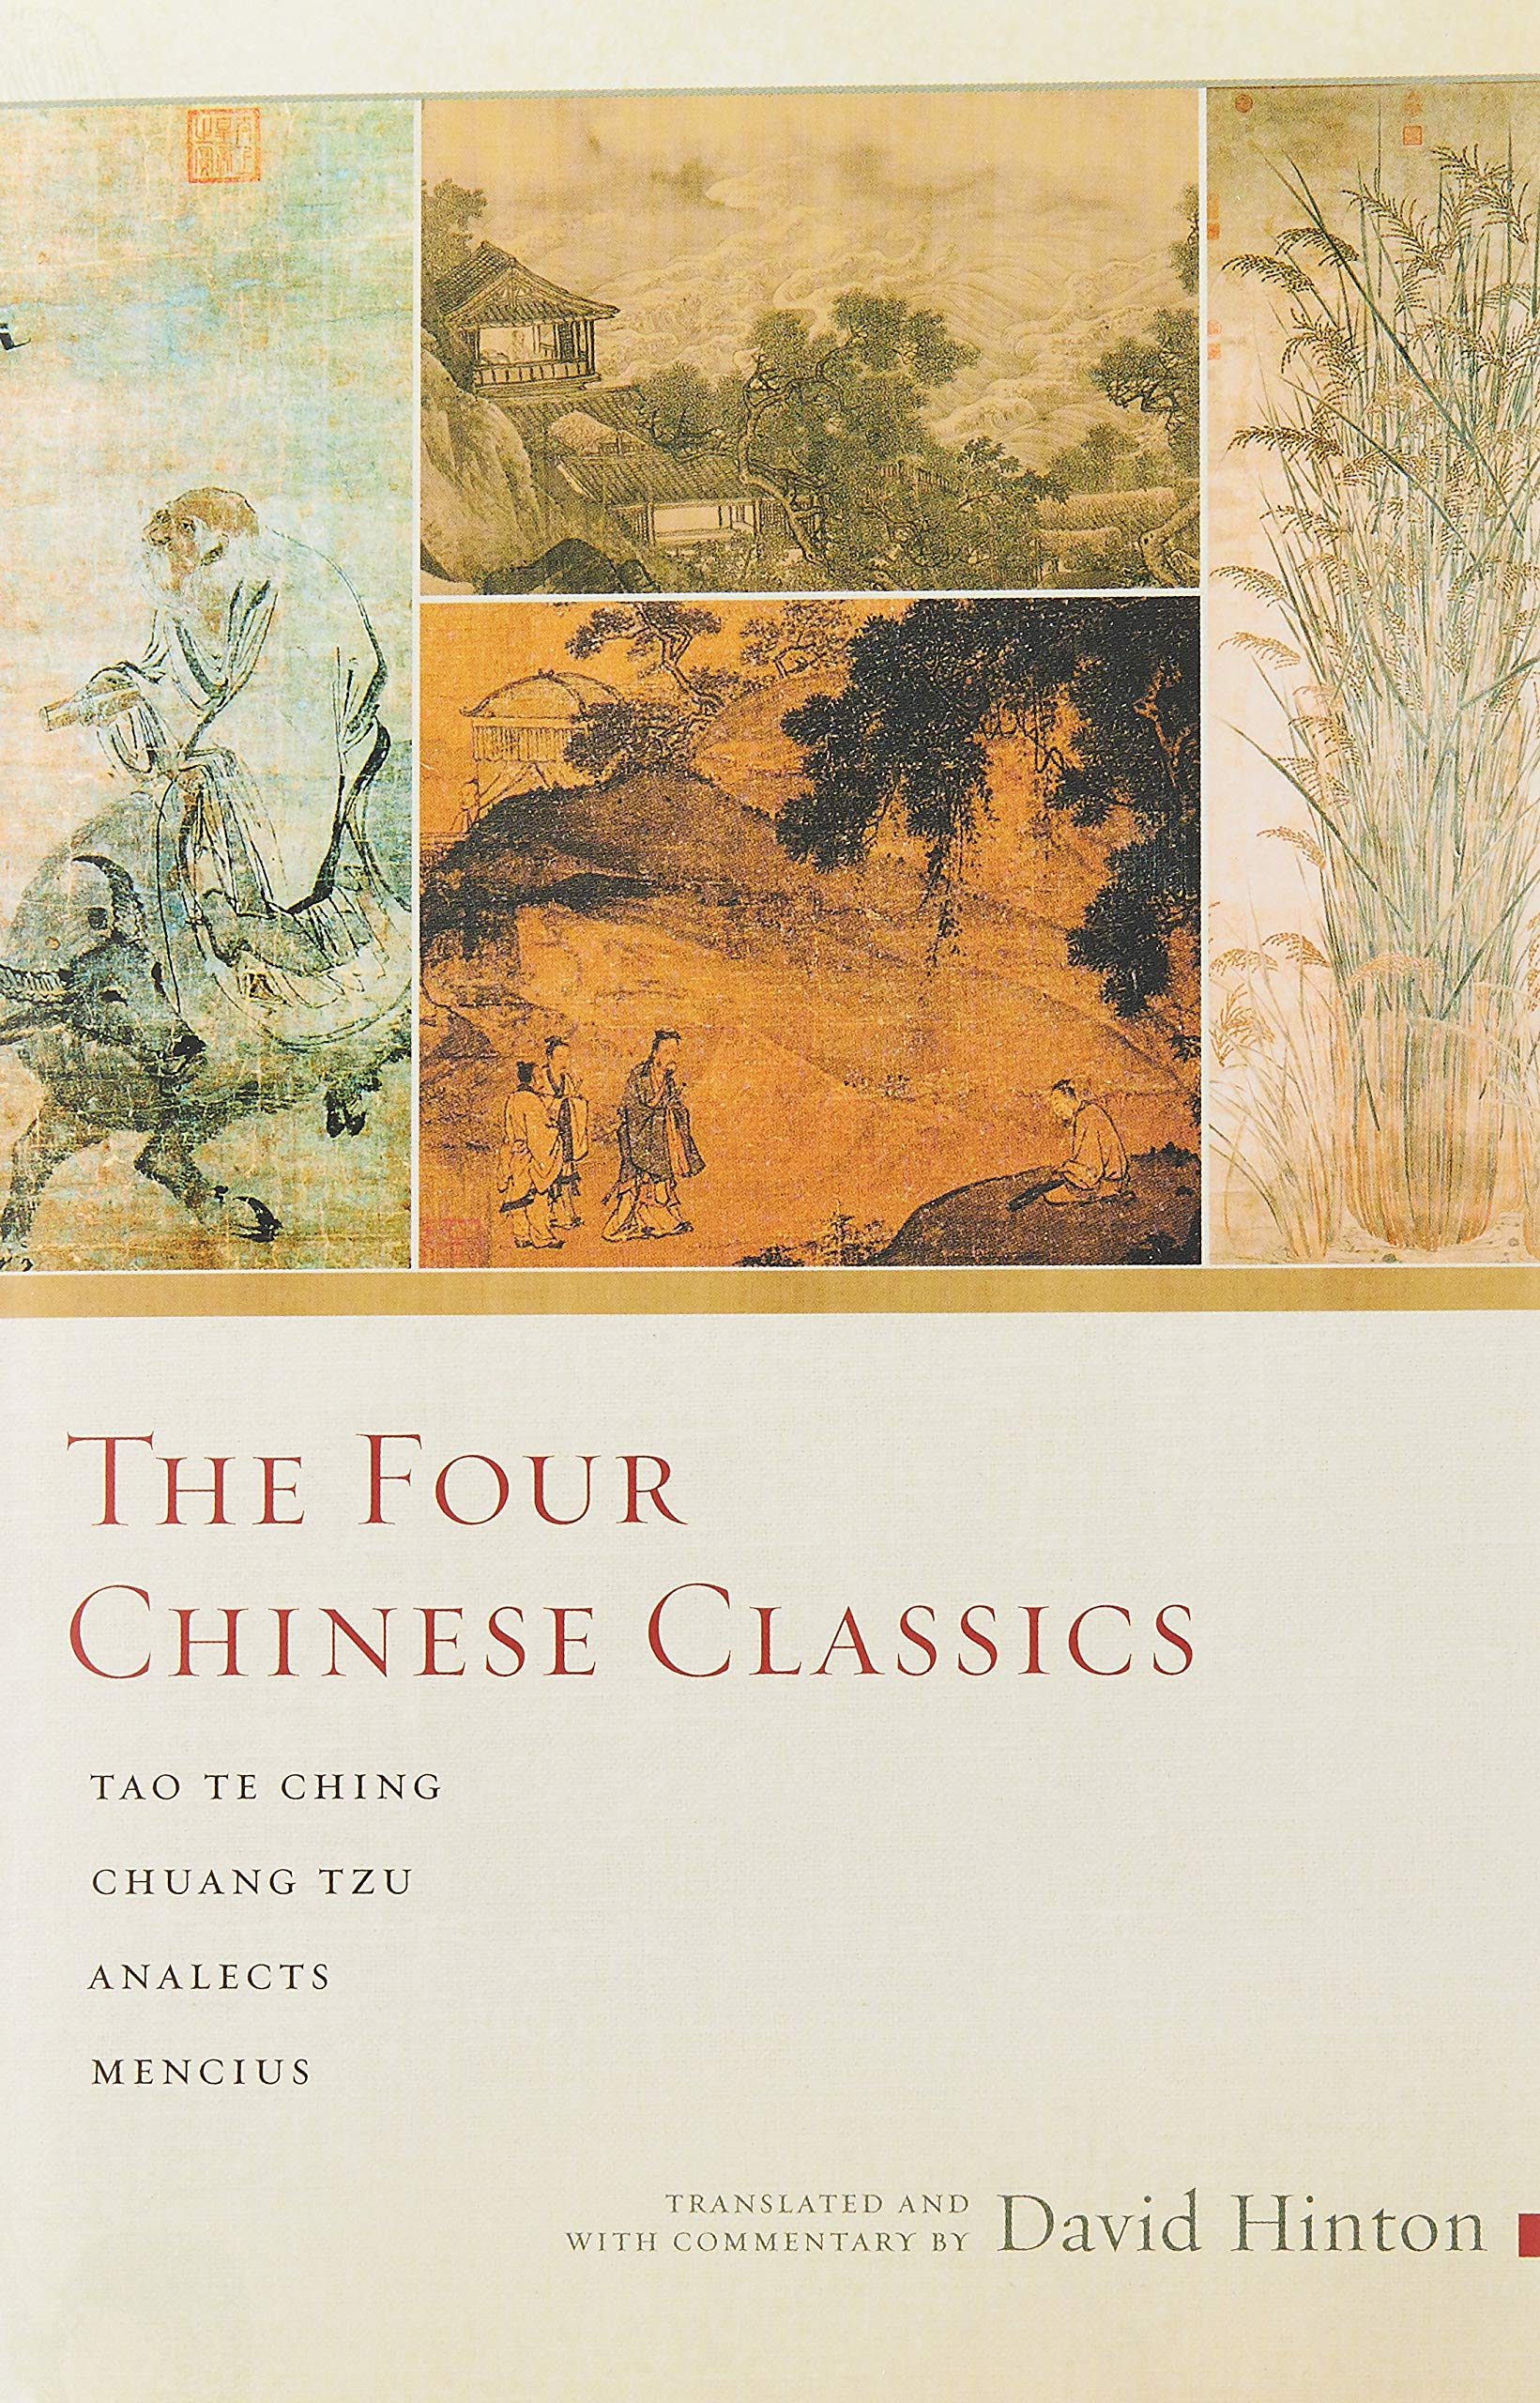 The Four Chinese Classics: Tao Te Ching Chuang Tzu Analects Mencius